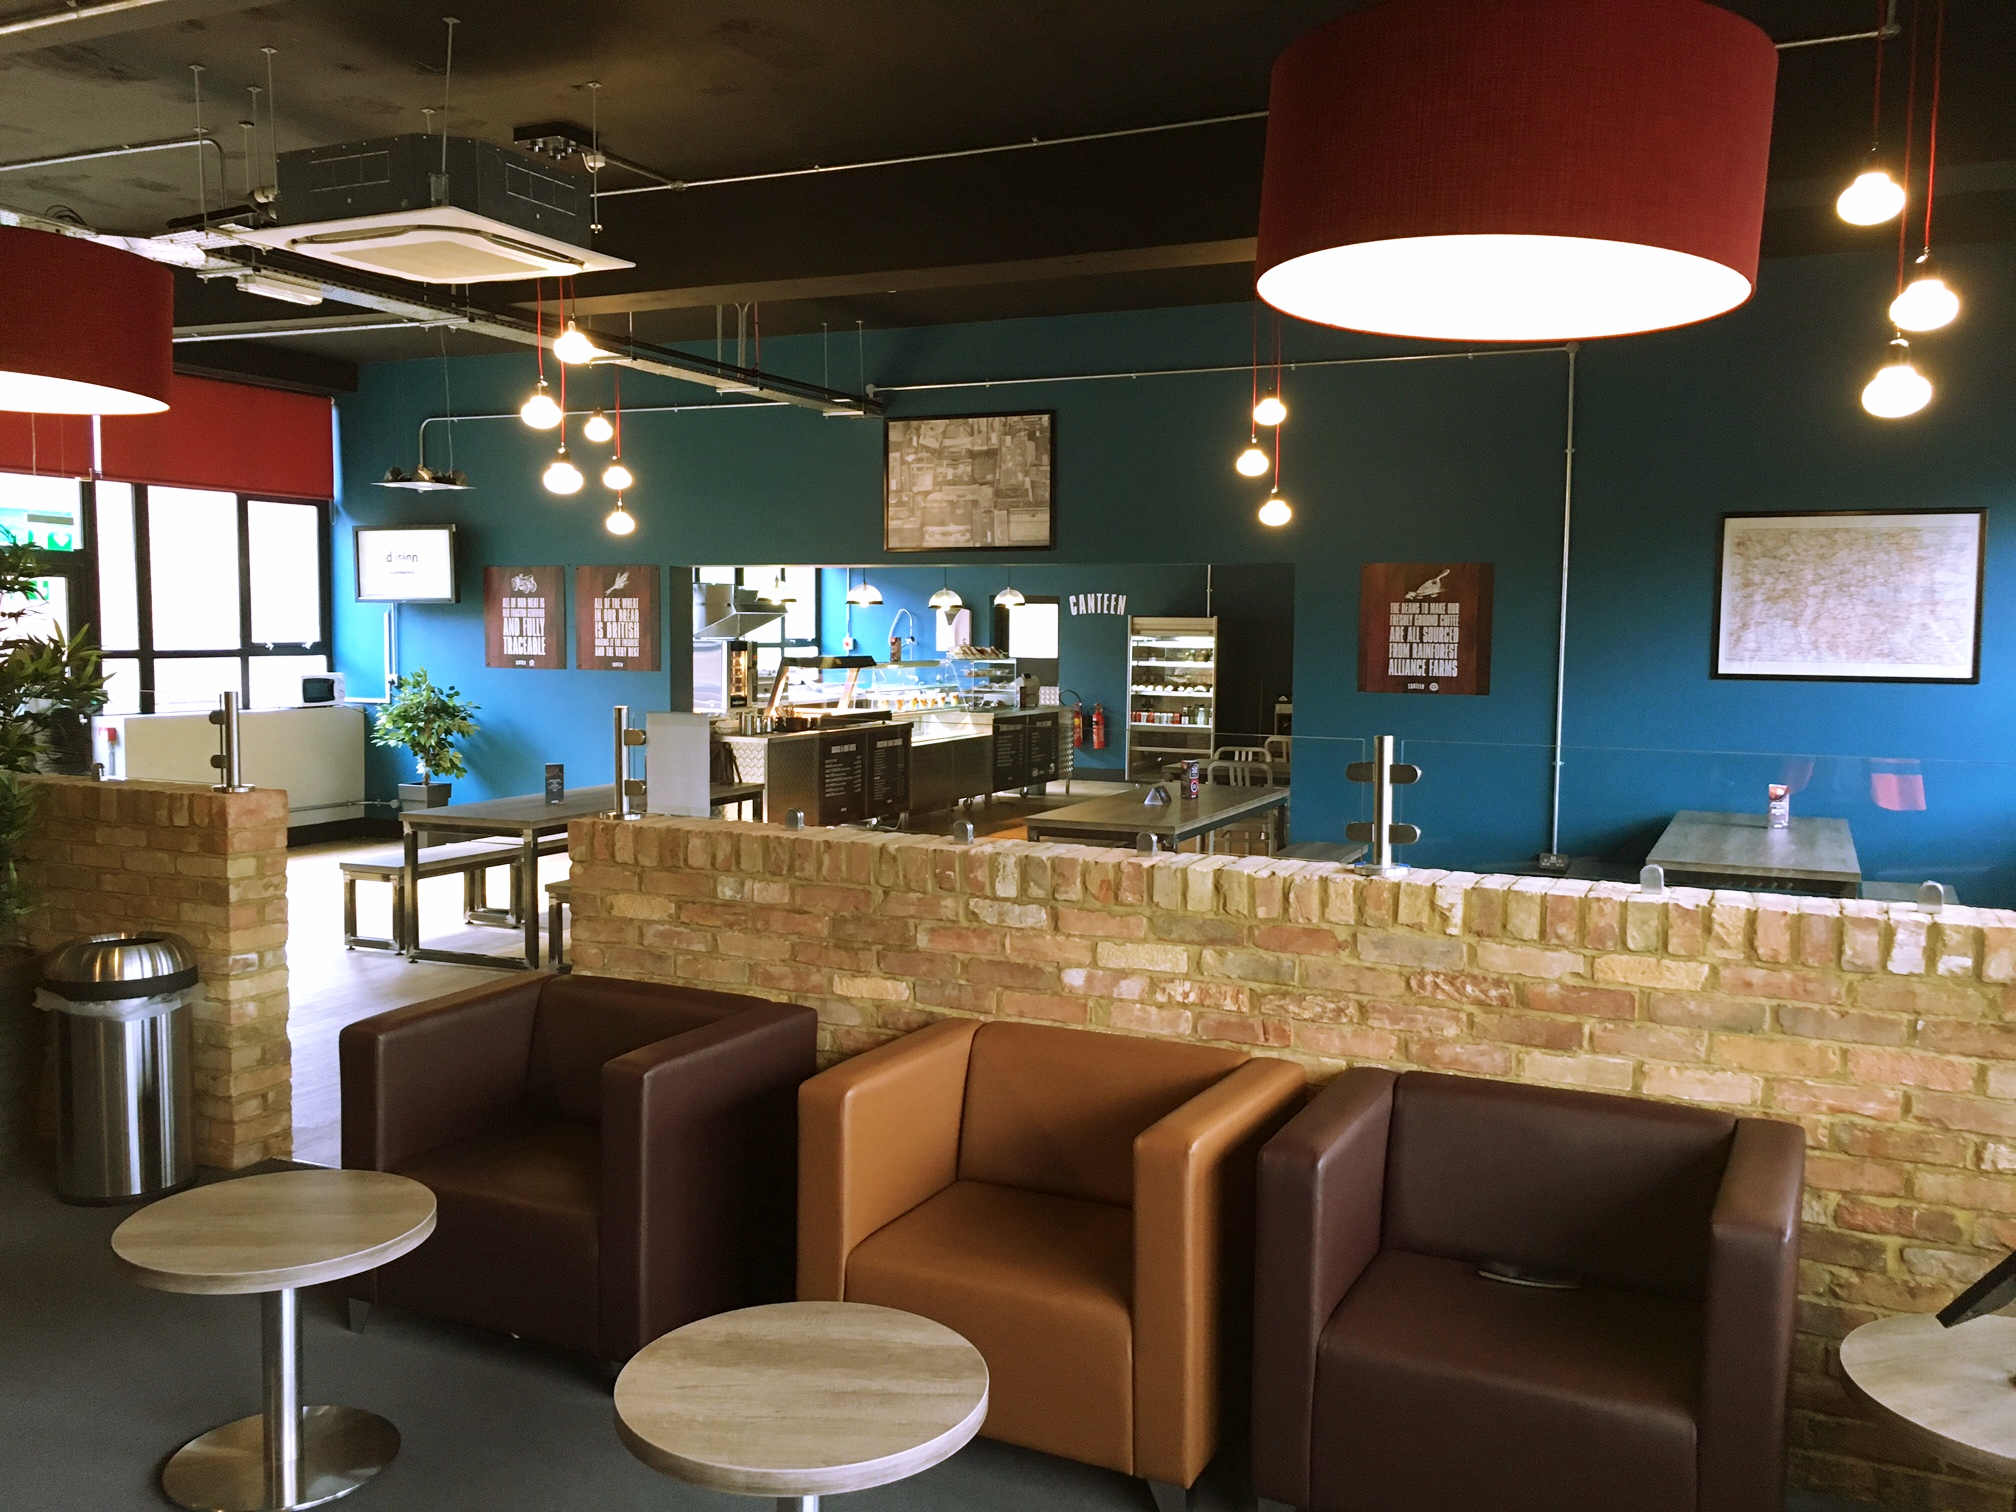 Client Name: Arriva Croydon  Project Type: Canteen refurbishment  Project Size: 150m2